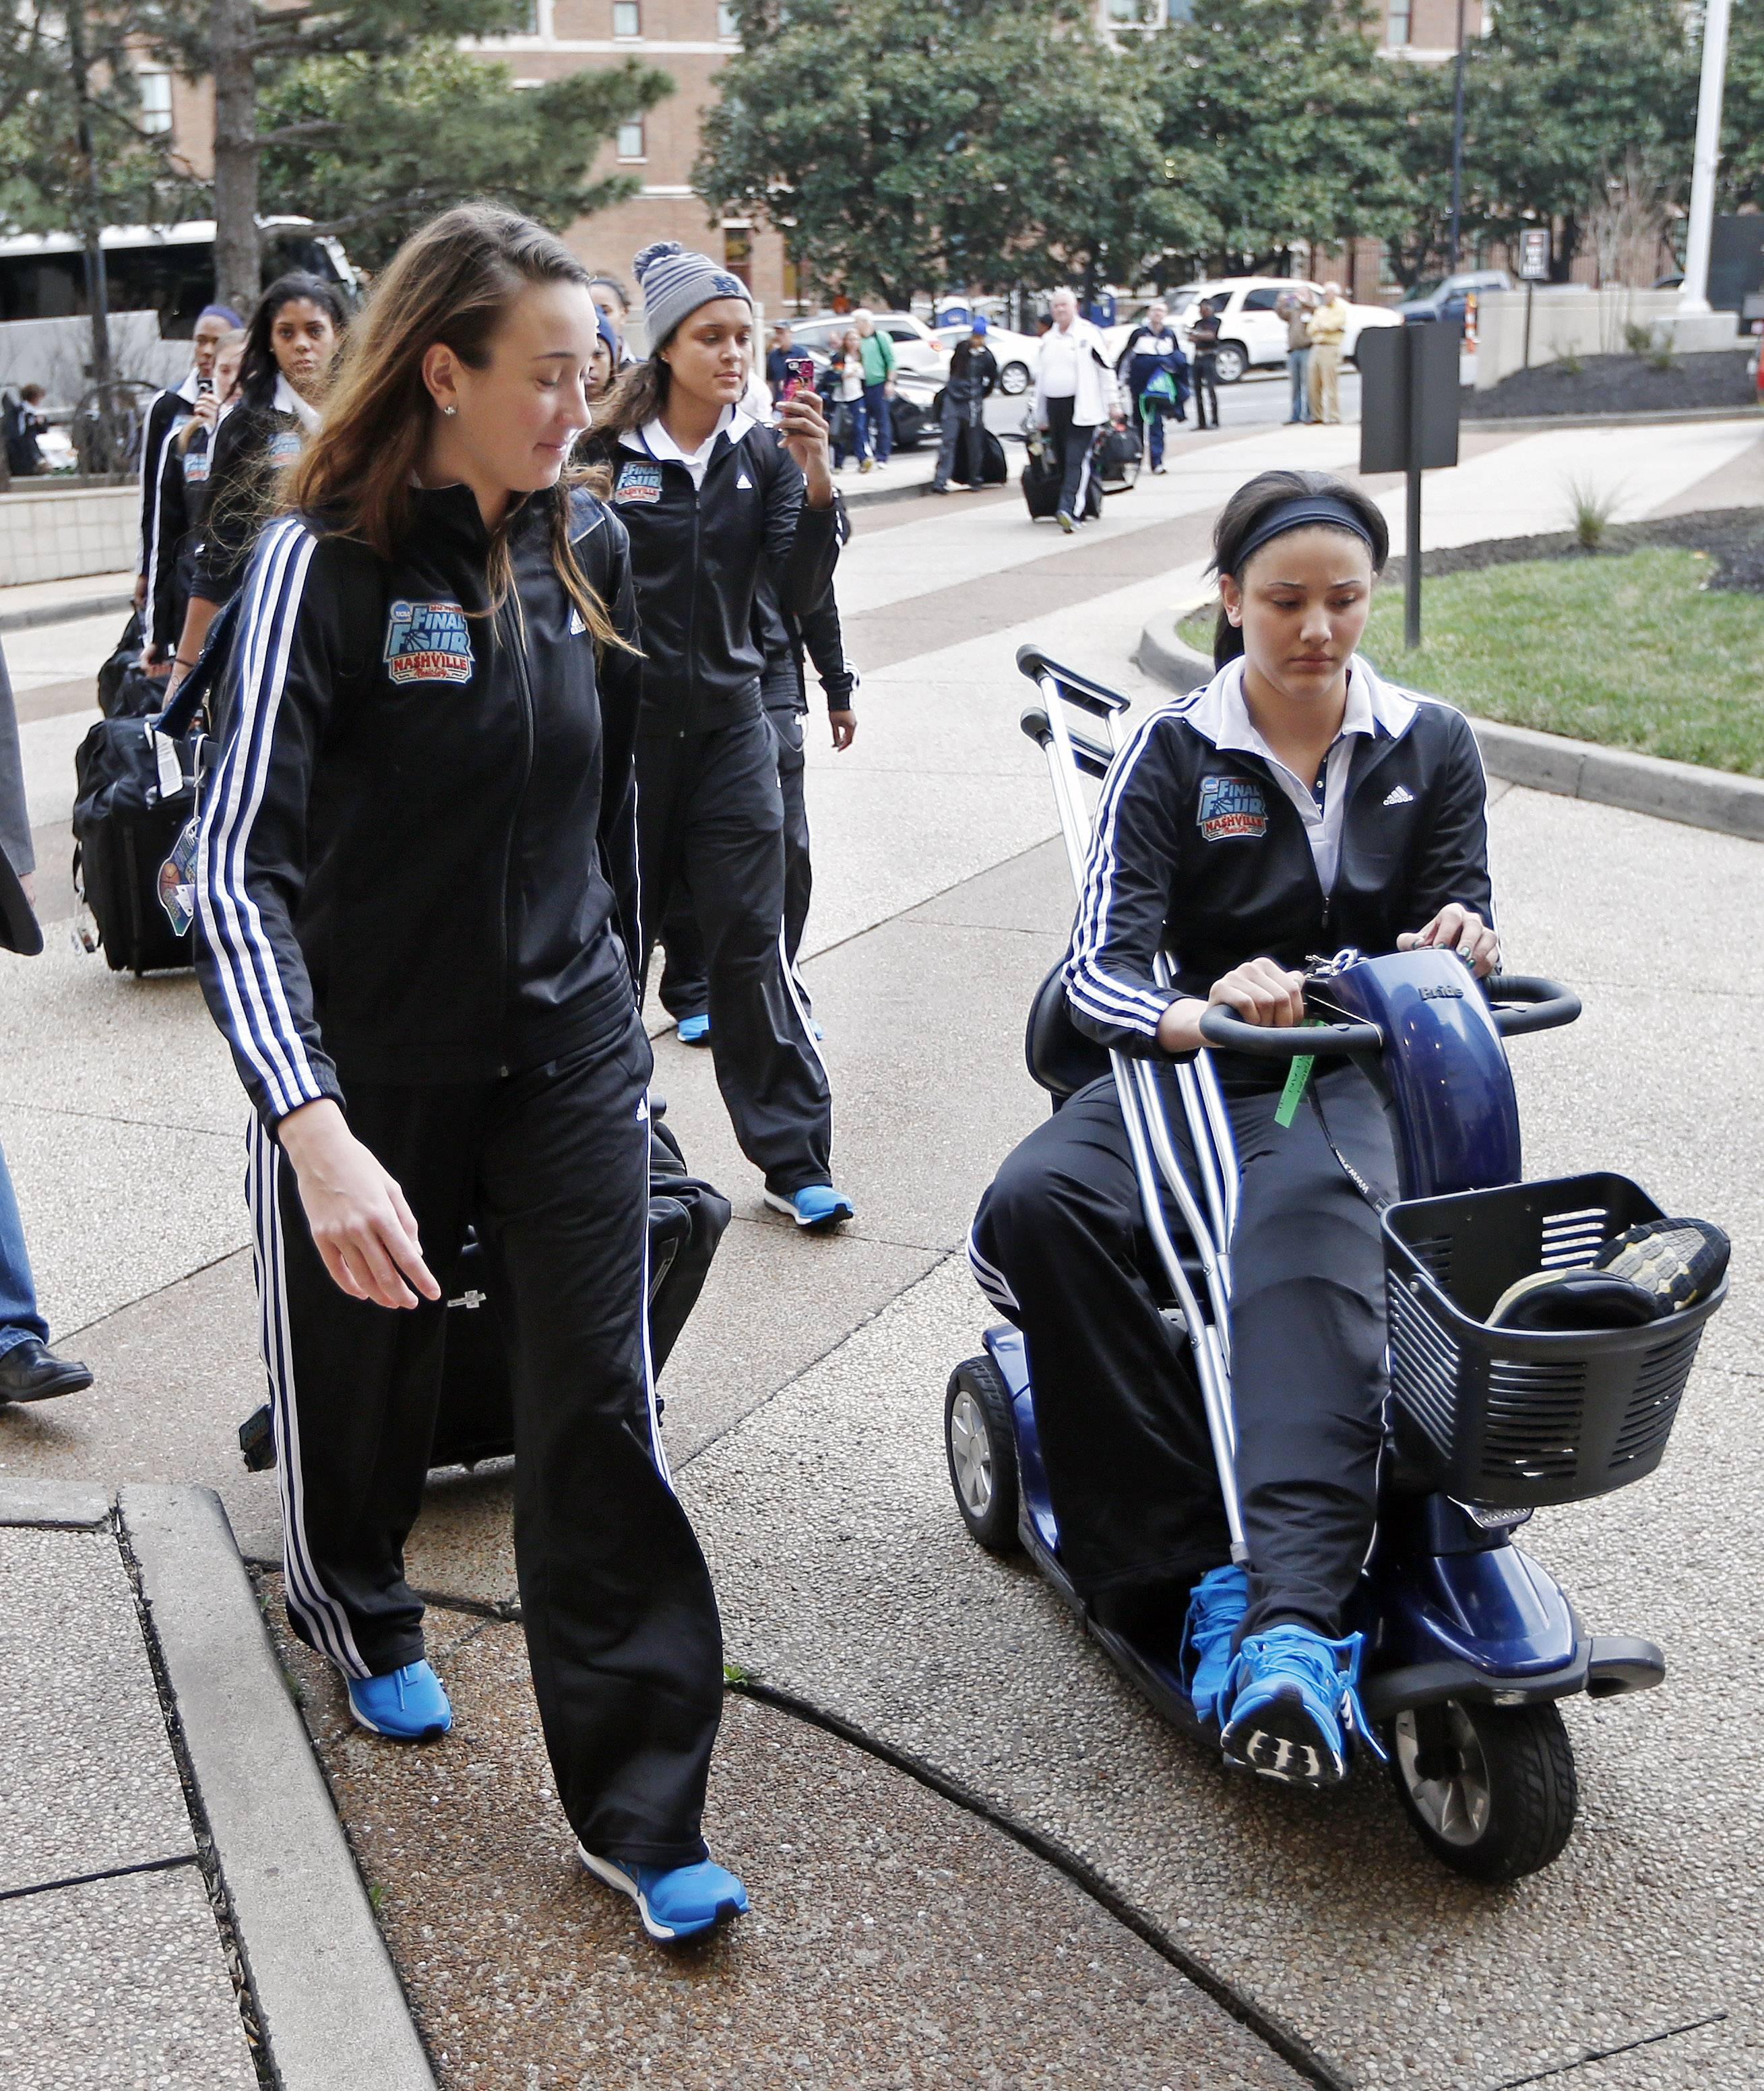 Notre Dame injured forward Natalie Achonwa, right, arrives with teammates for the NCAA women's Final Four.